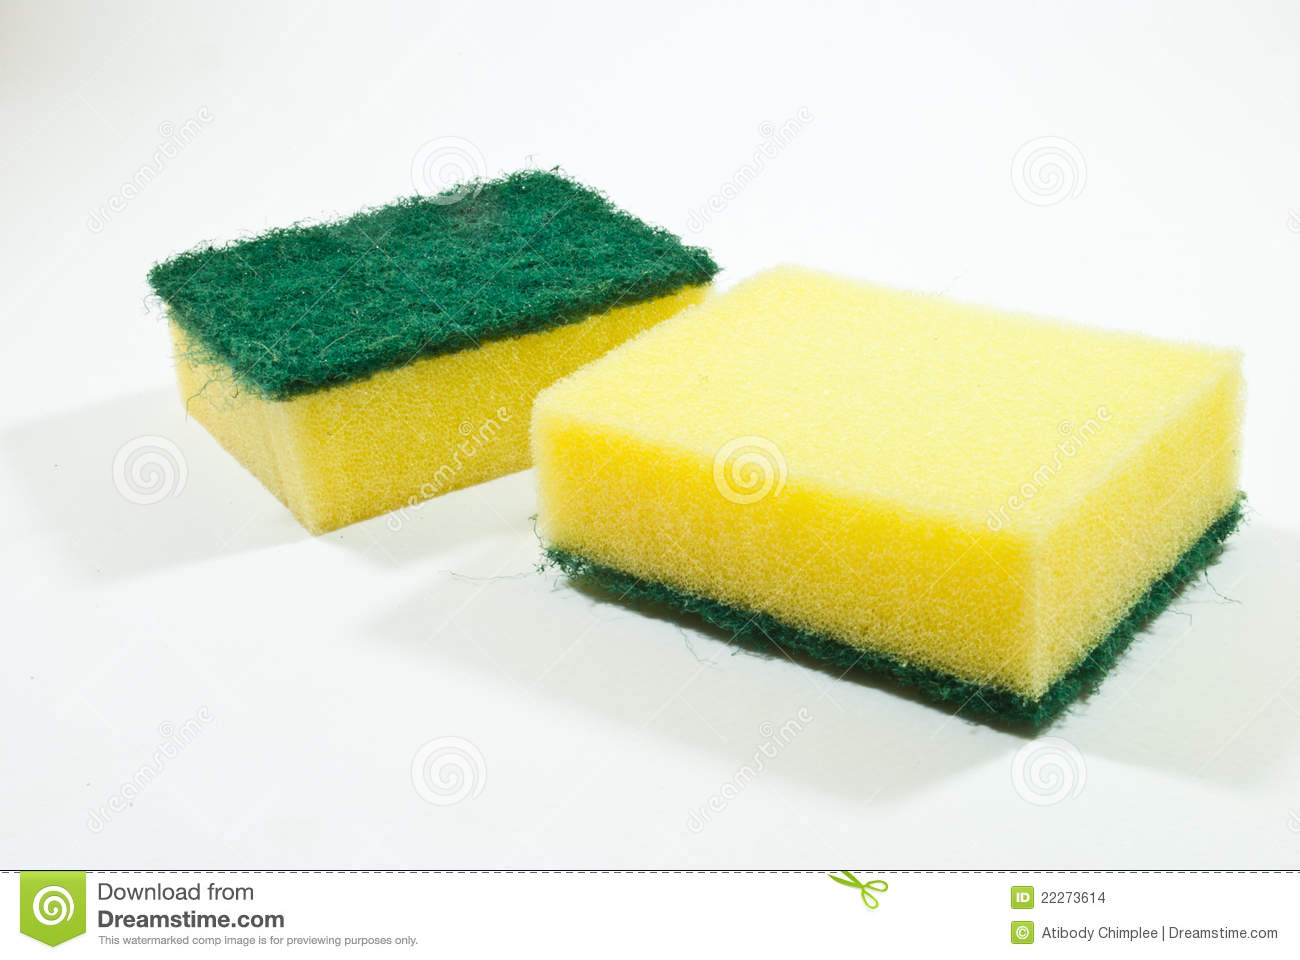 Kitchen sponge stock photo. Image of house, fresh, clean - 22273614